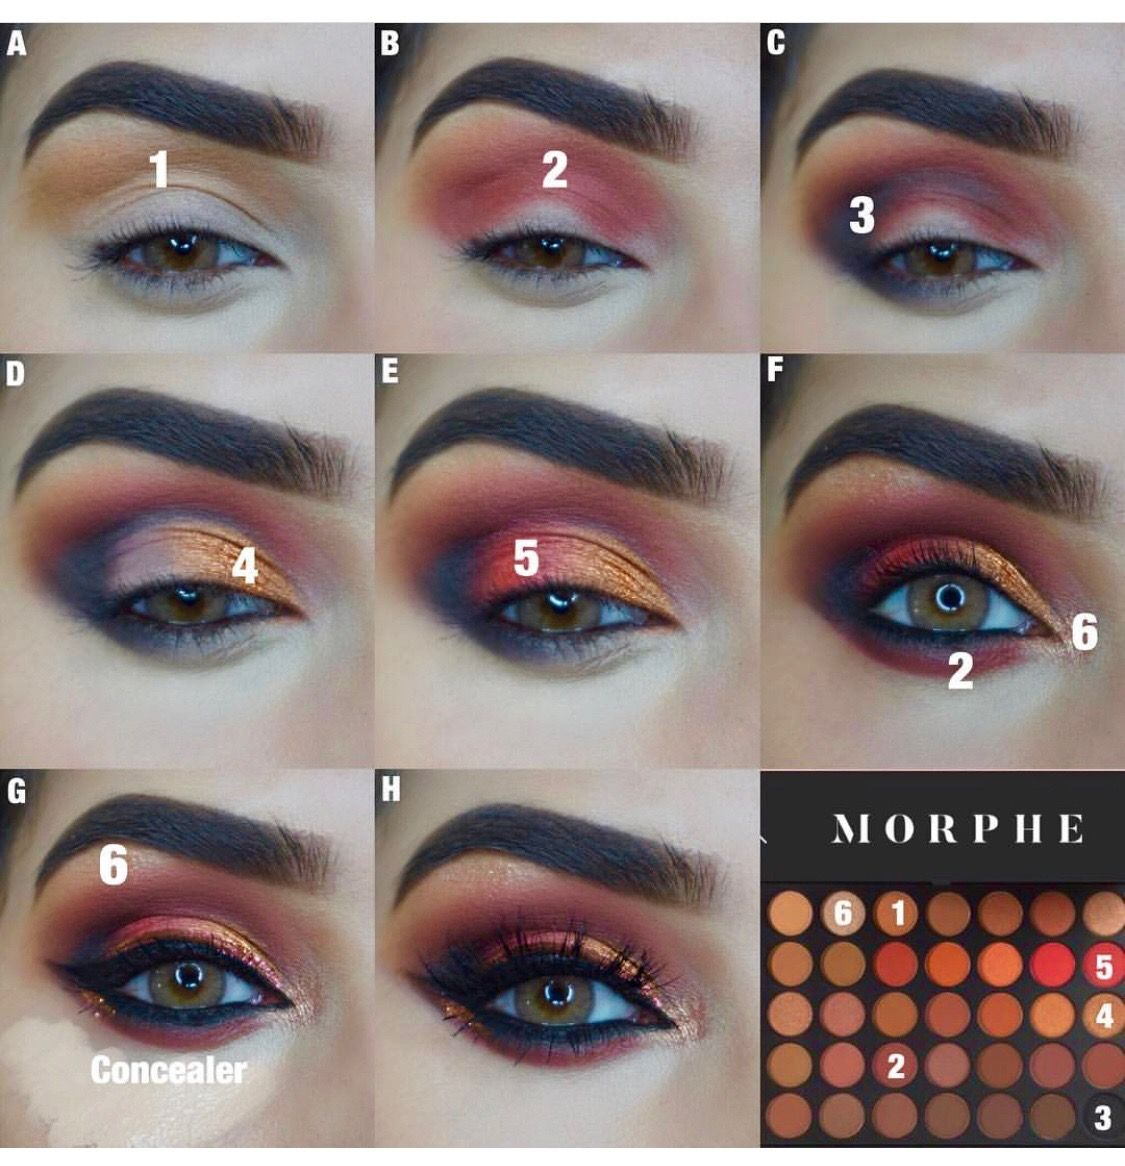 Morphe palette Makeup morphe, Eyeshadow makeup, New